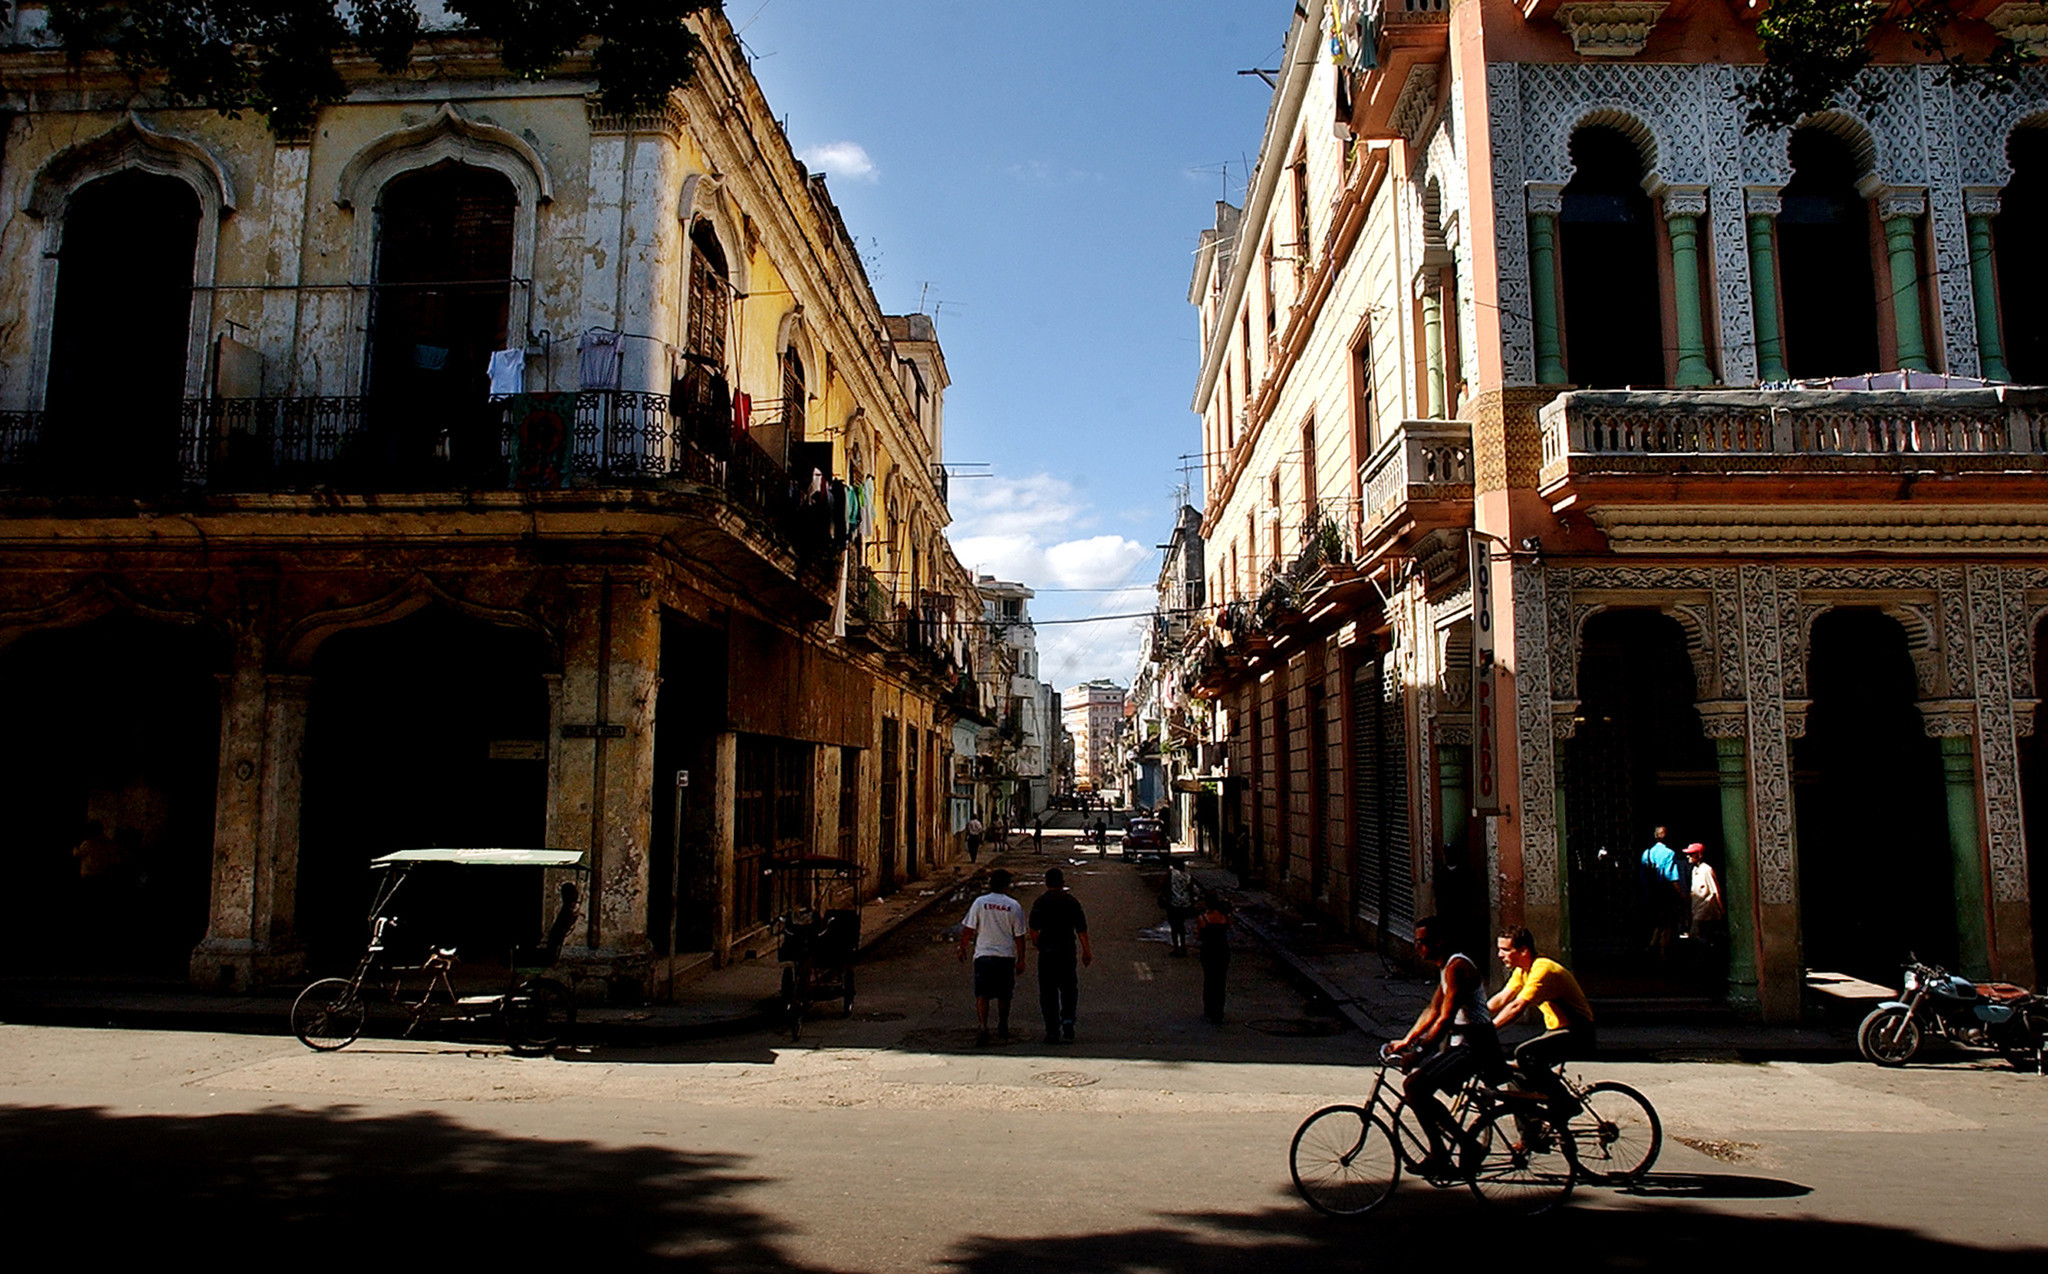 In this December 15, 2002 file photograph, a street scene in Havana, Cuba, is captured. Liberalized rules make it easier, but just don't call it a vacation.